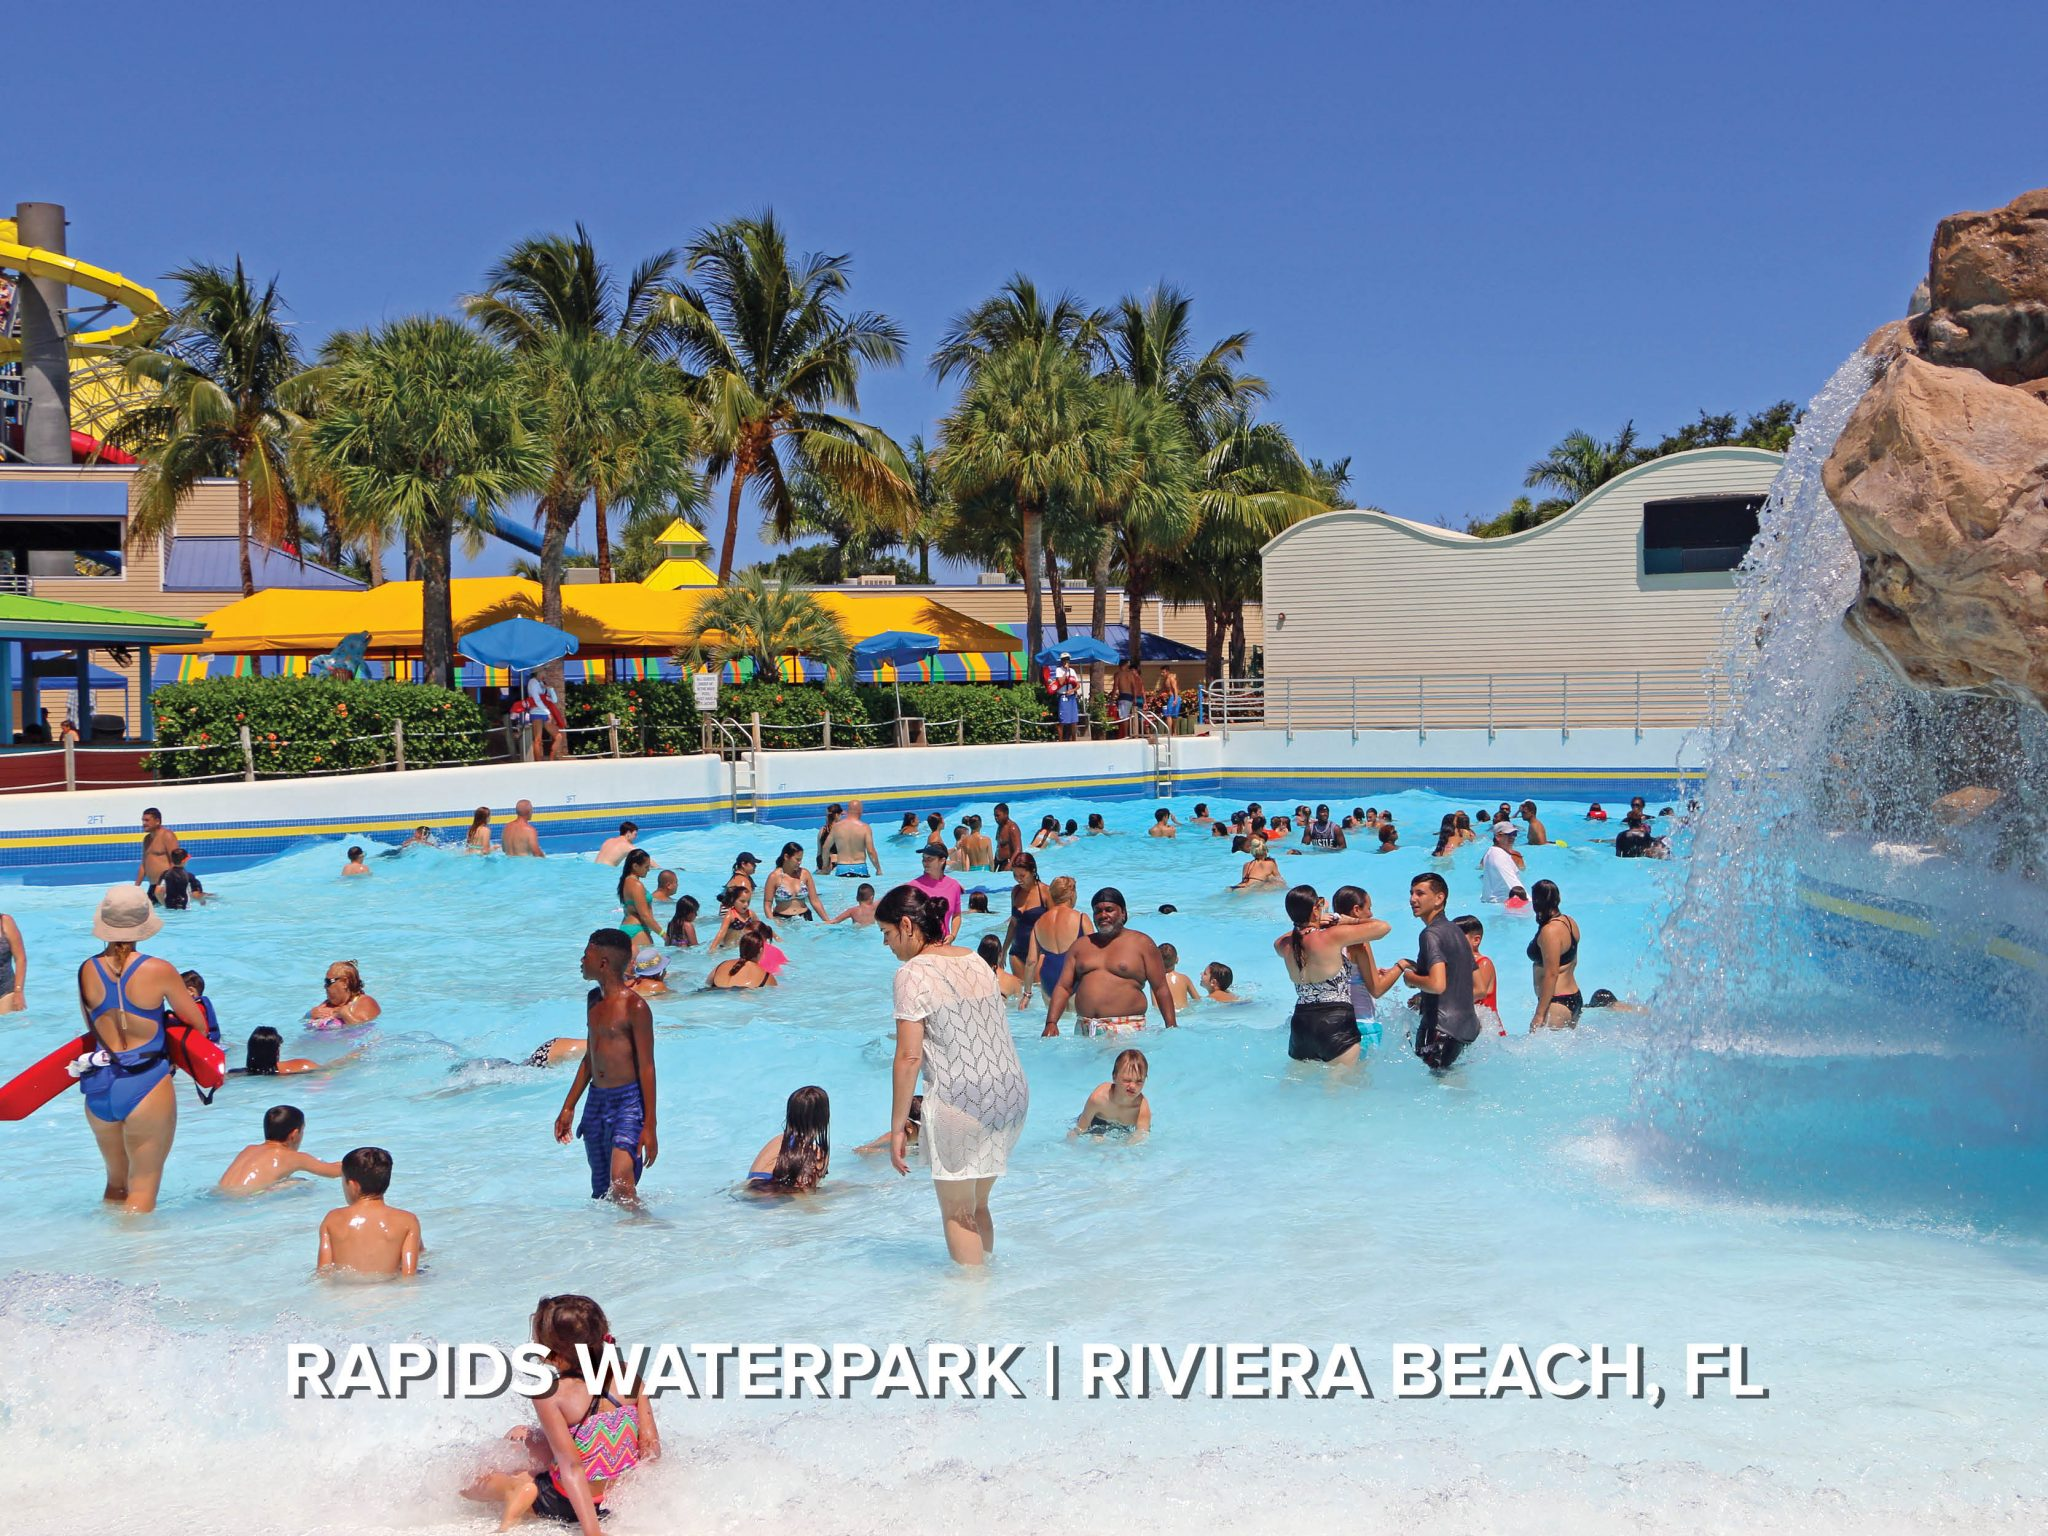 rapids waterpark